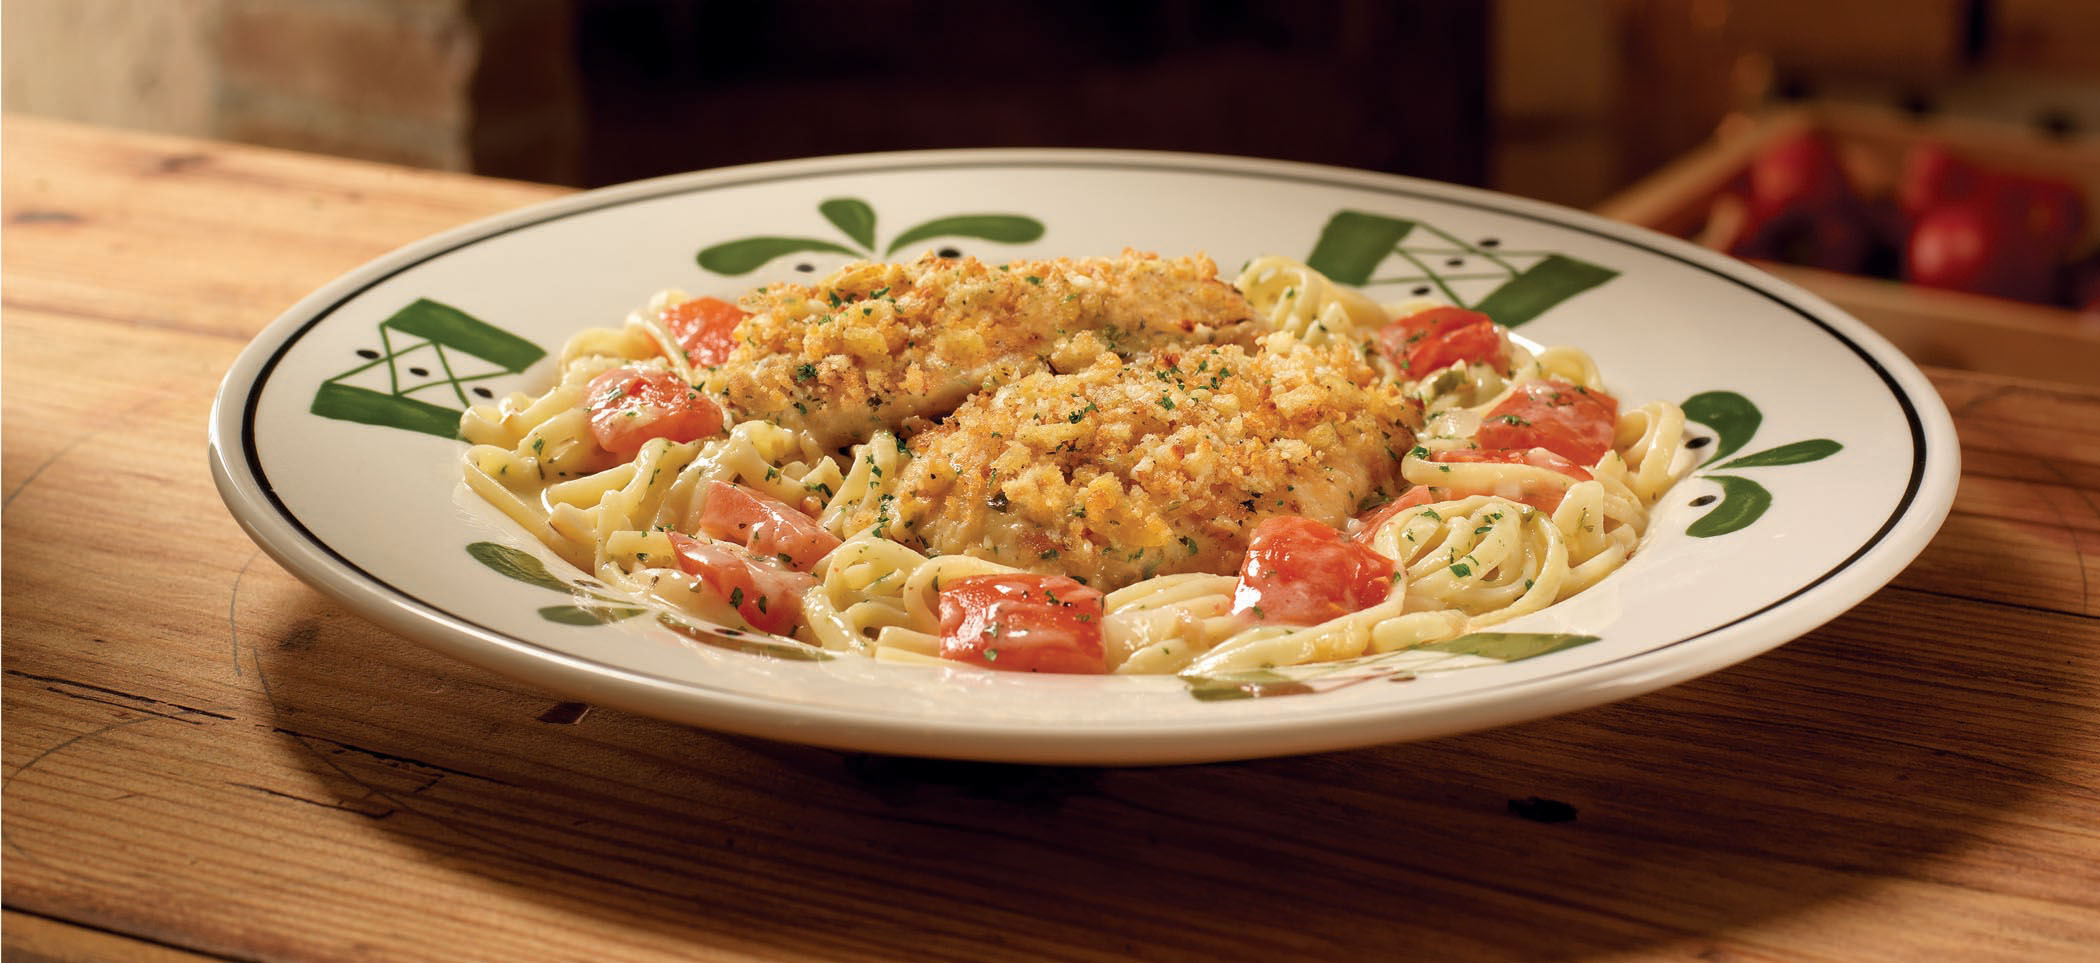 Olive Garden Menu Pdf: Chicken Crostina Debuts At Olive Garden